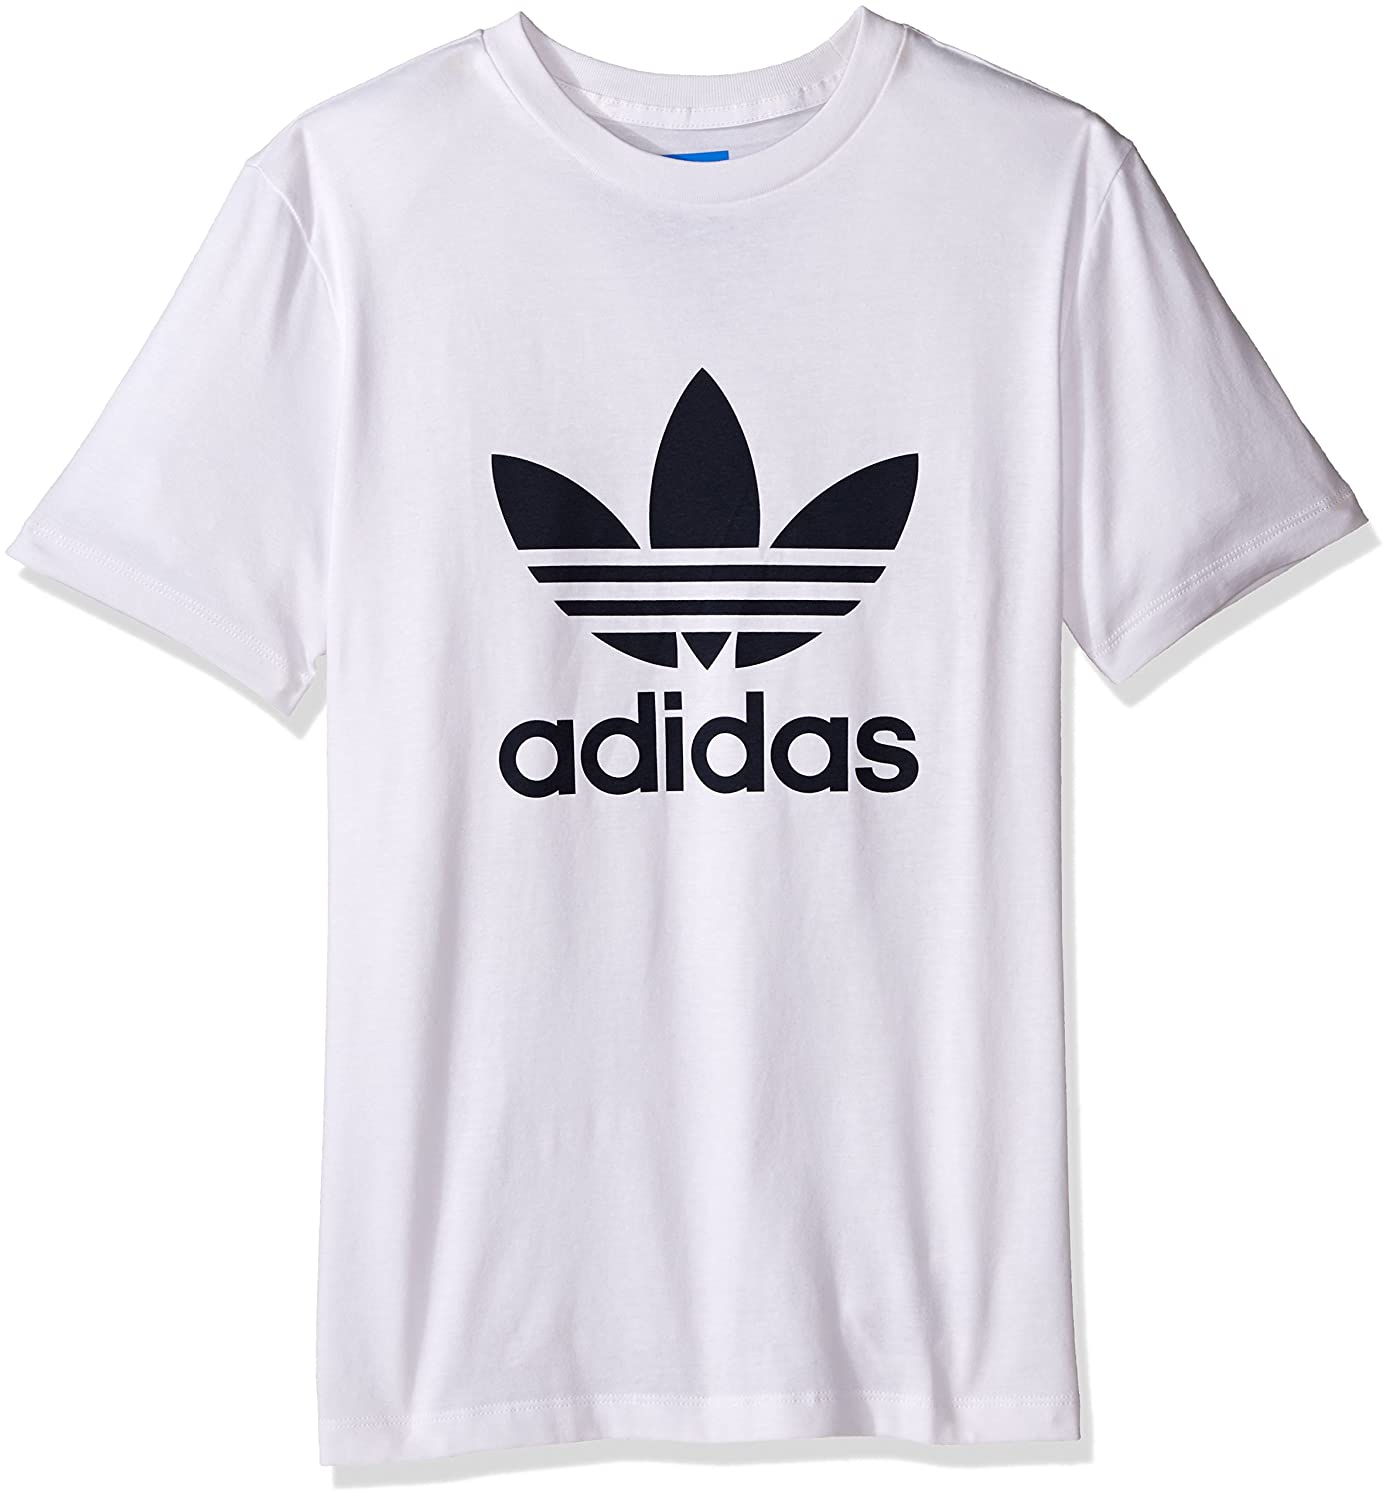 adidas t shirt amazon. Black Bedroom Furniture Sets. Home Design Ideas